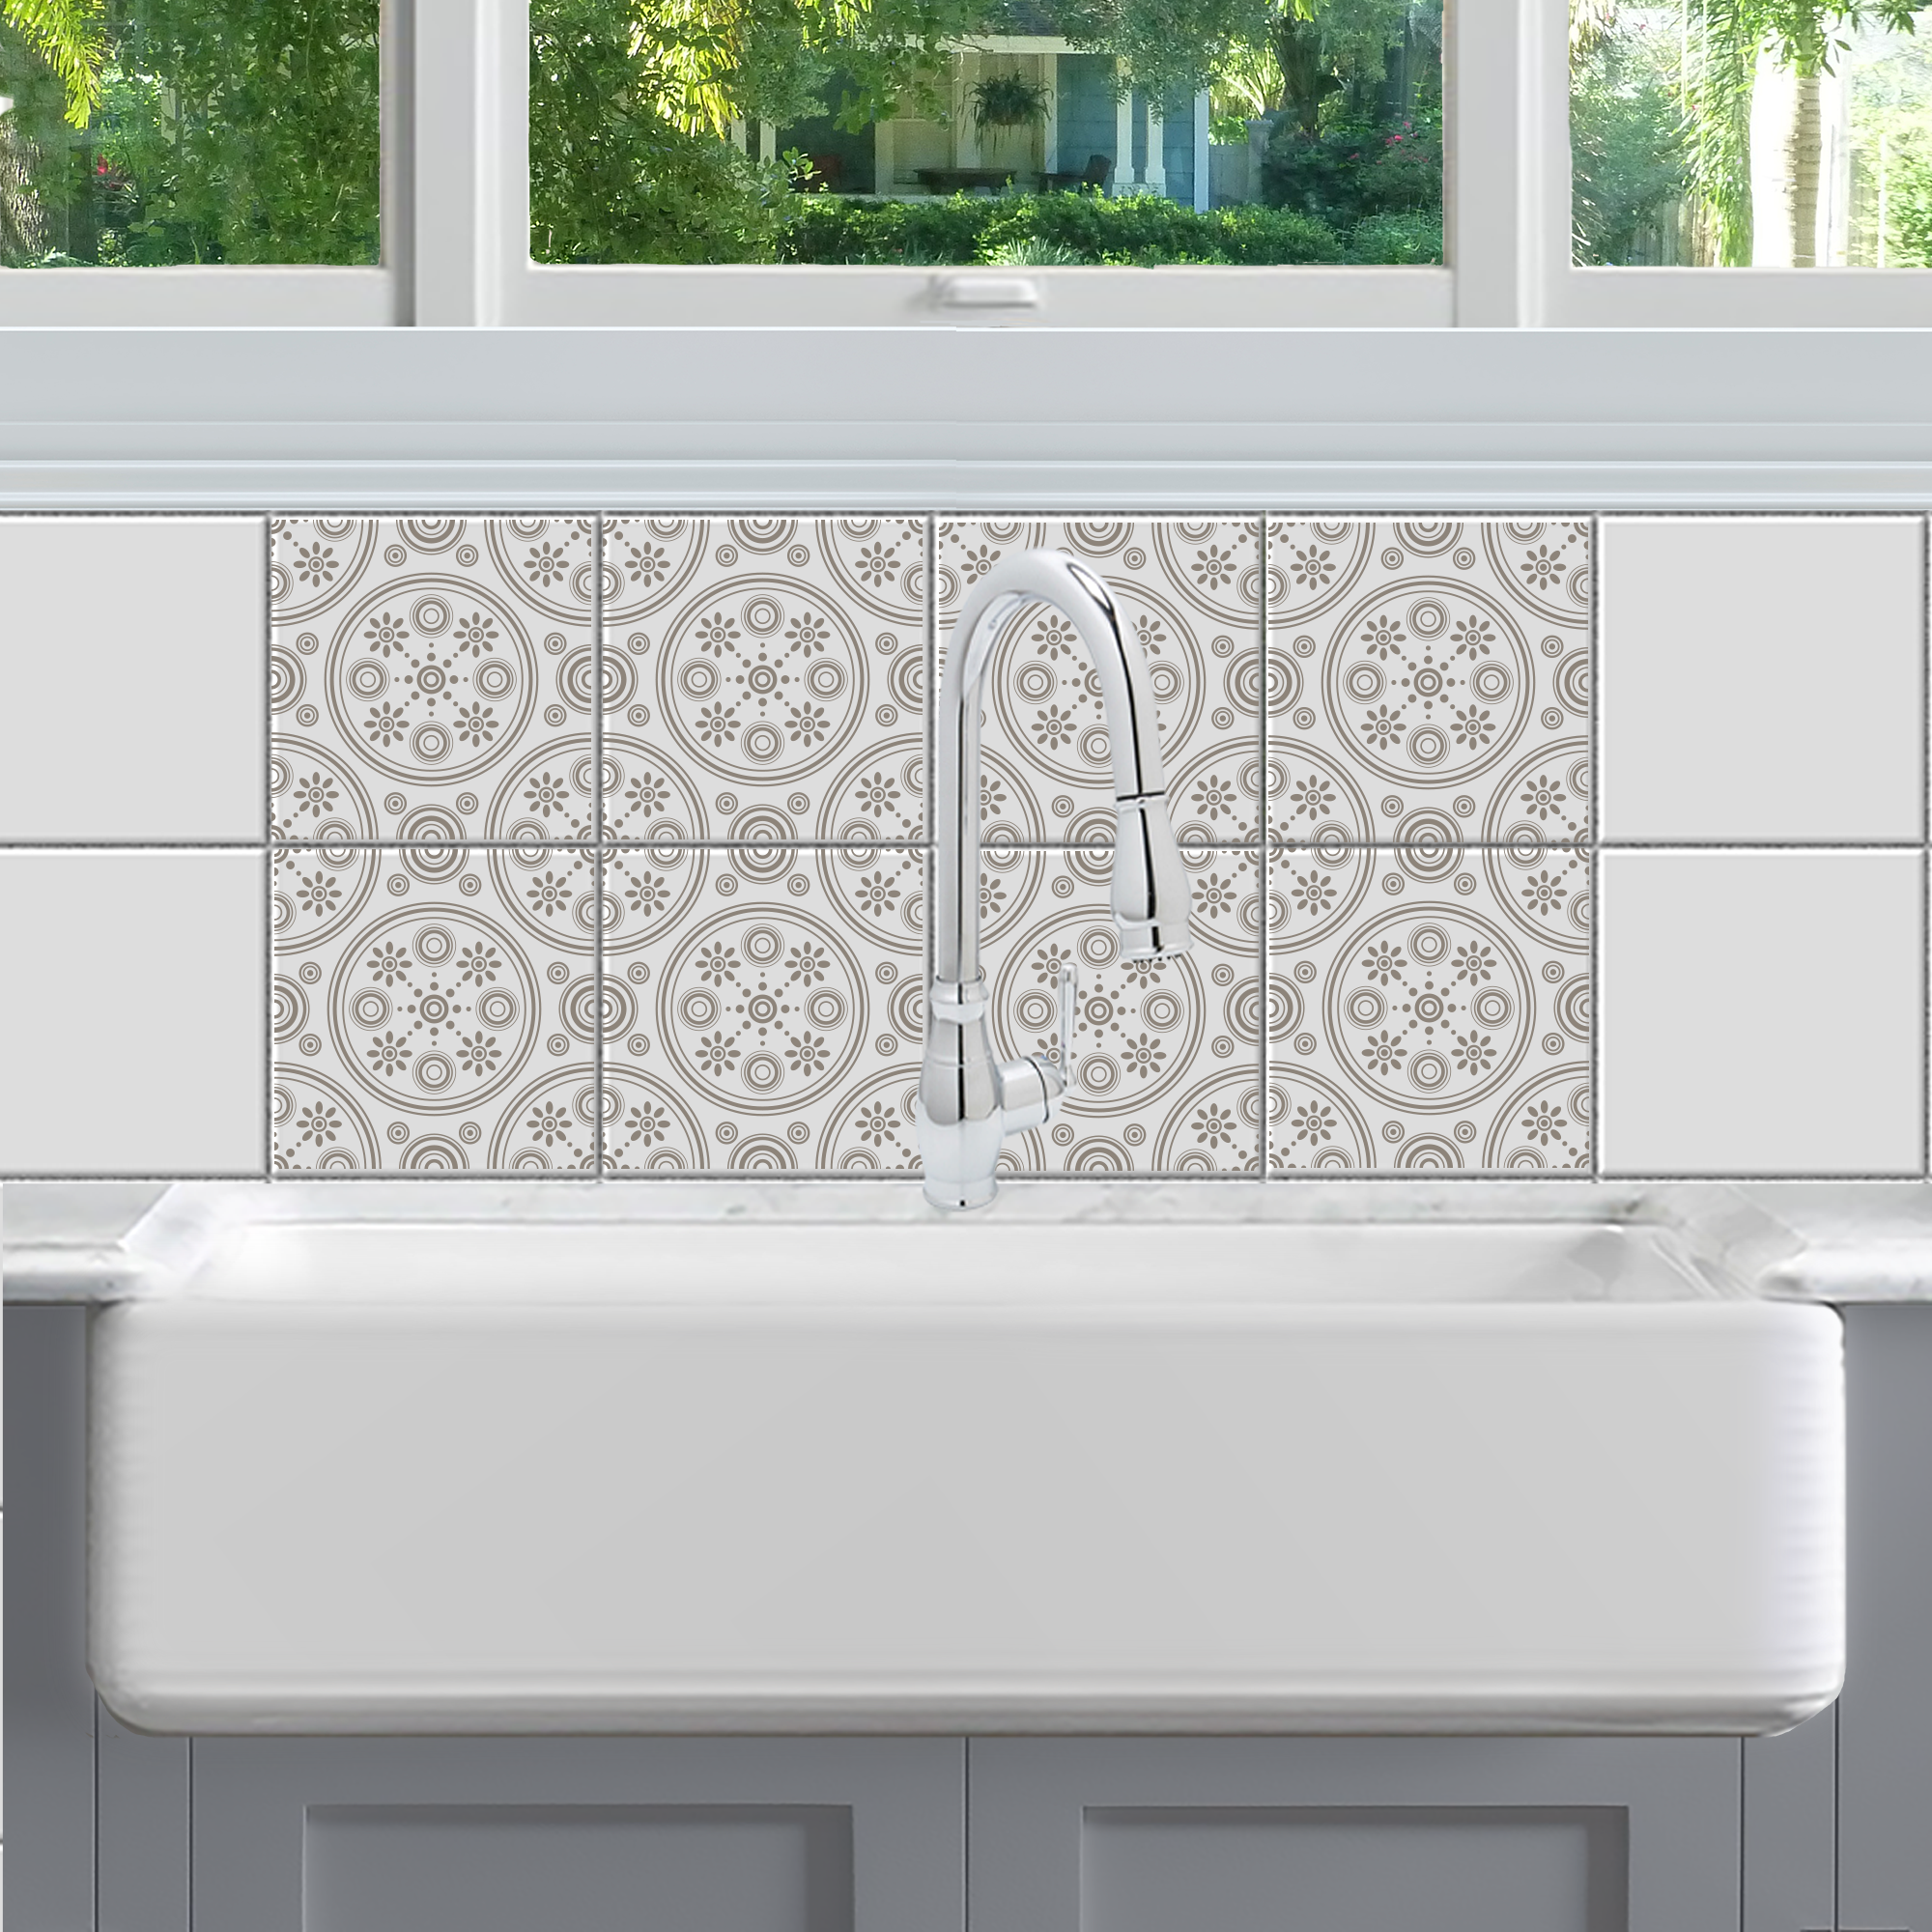 Retro Daisies Tile Decals | Tile decals, Laundry rooms and Laundry